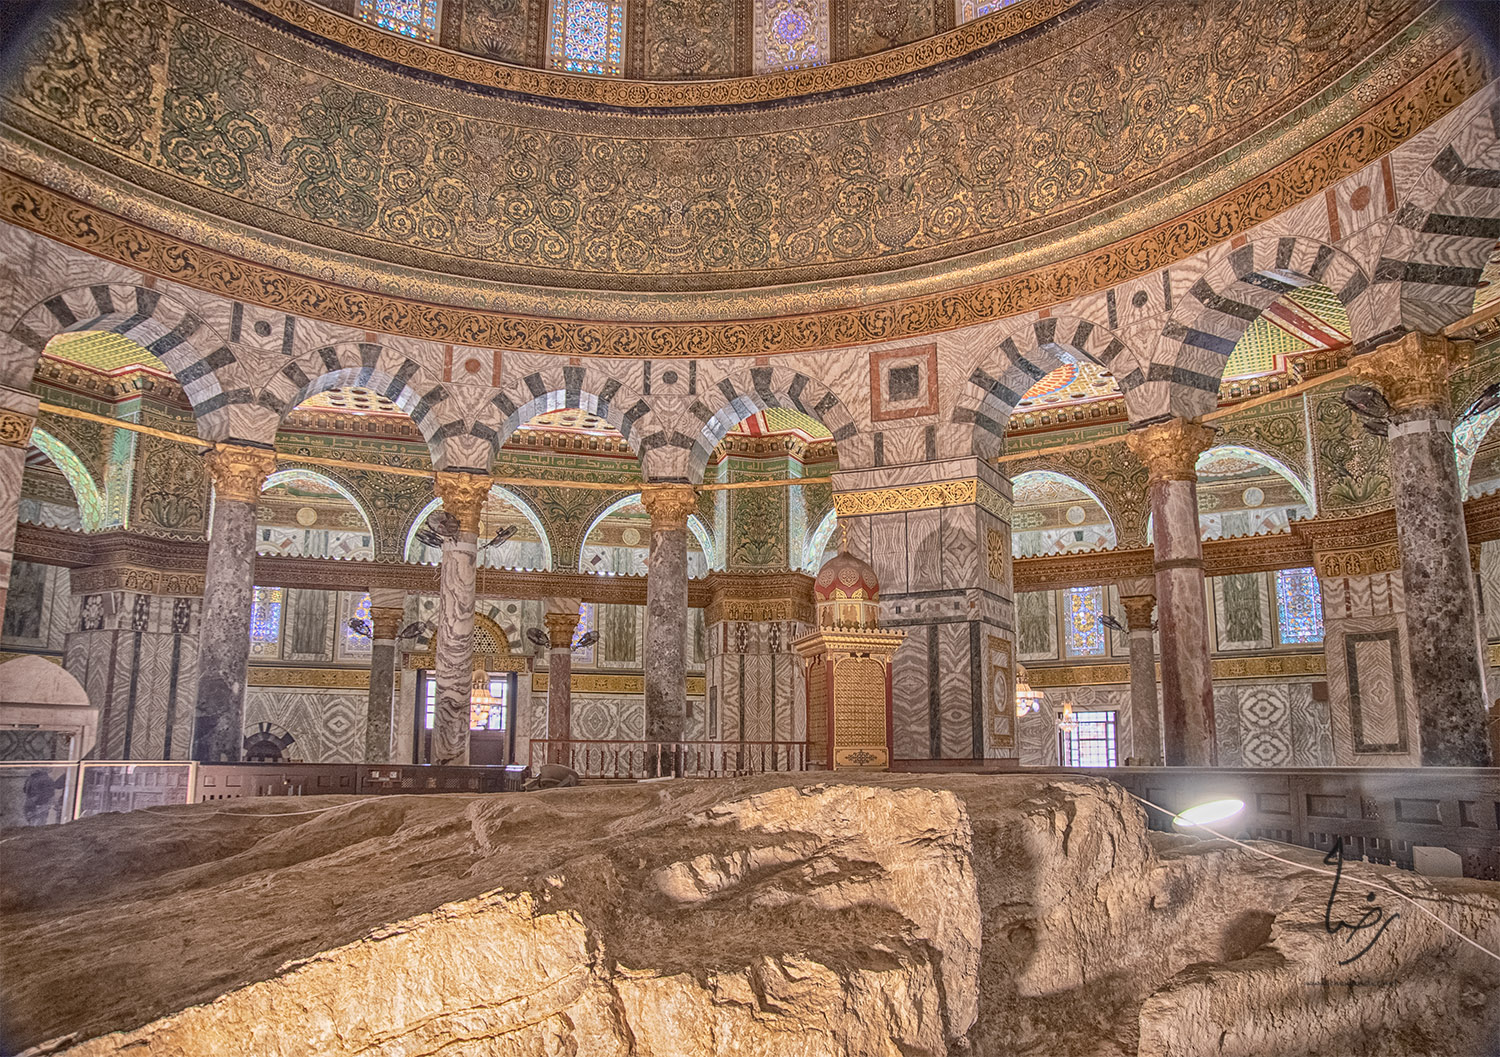 The Rock in the Dome of the Rock; Even ha-Shtiyya (The foundation stone), al-Sakhrah al-Musharrafah (The Noble Rock). The reliquary next to the rock dates from the Ottoman period and contains a hair of Muhammad's beard.